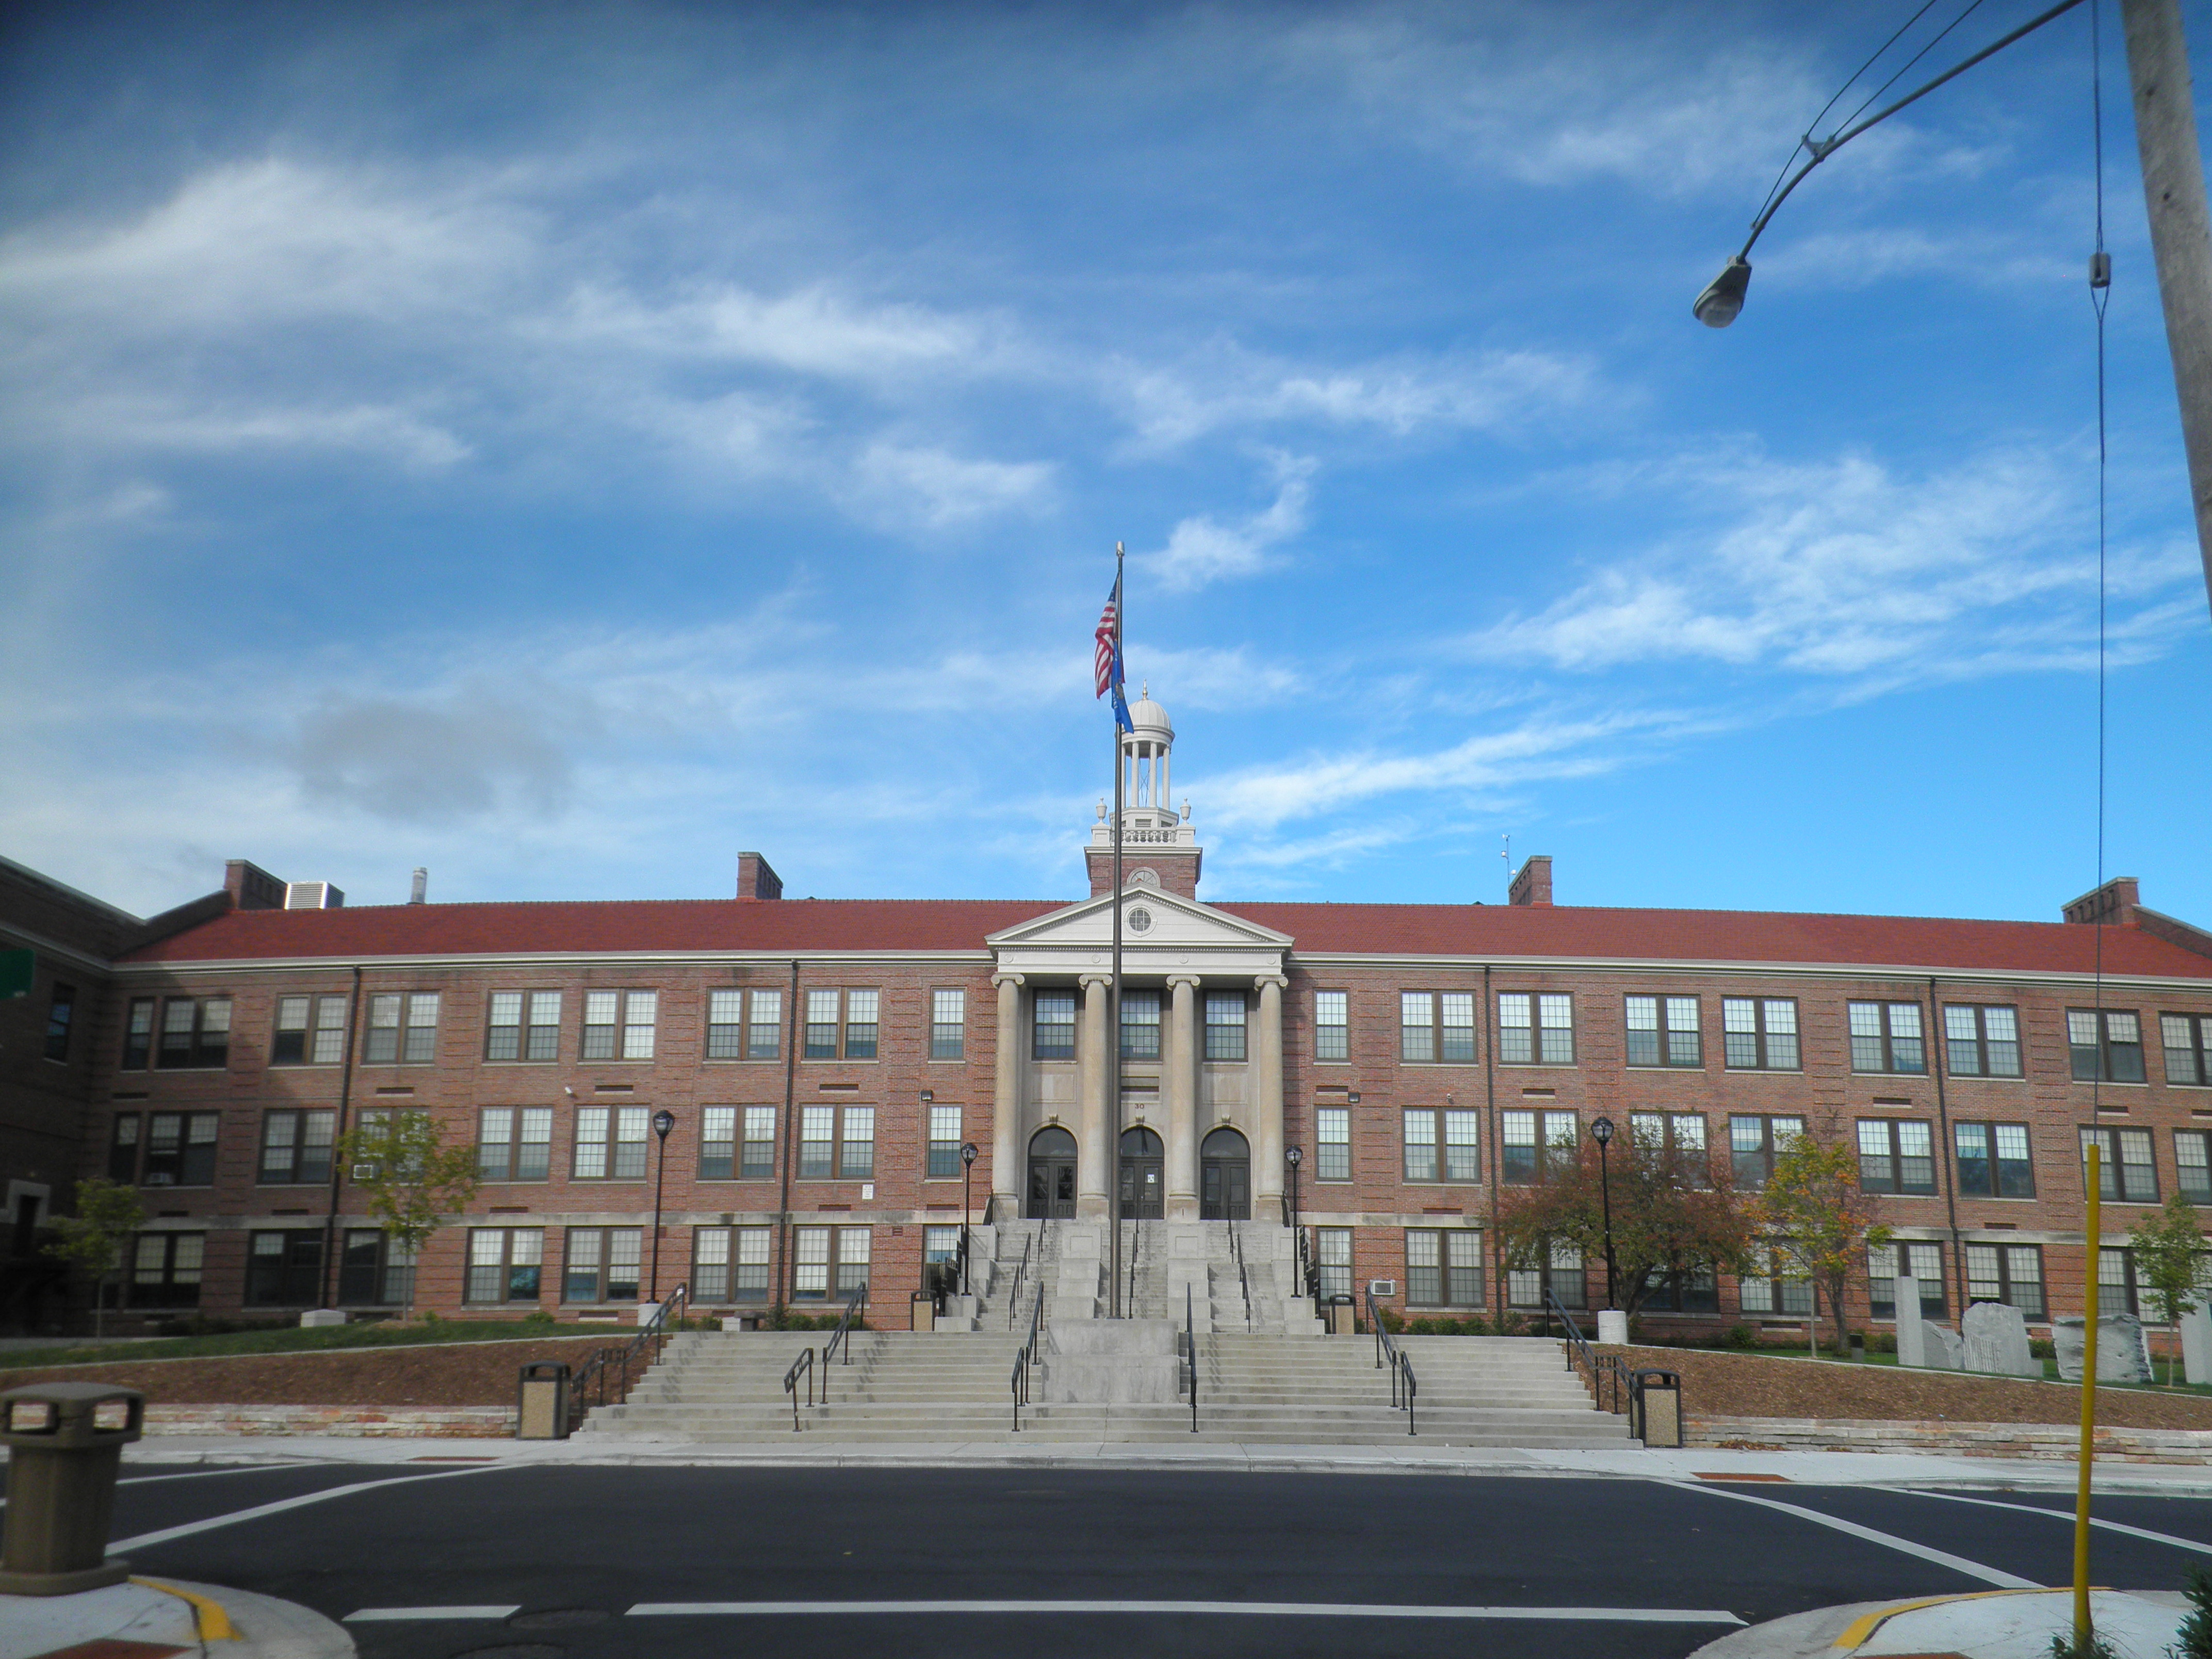 Madison West High School. Photo taken in 2010 by Corey Coyle [CC BY 3.0 (https://creativecommons.org/licenses/by/3.0)].